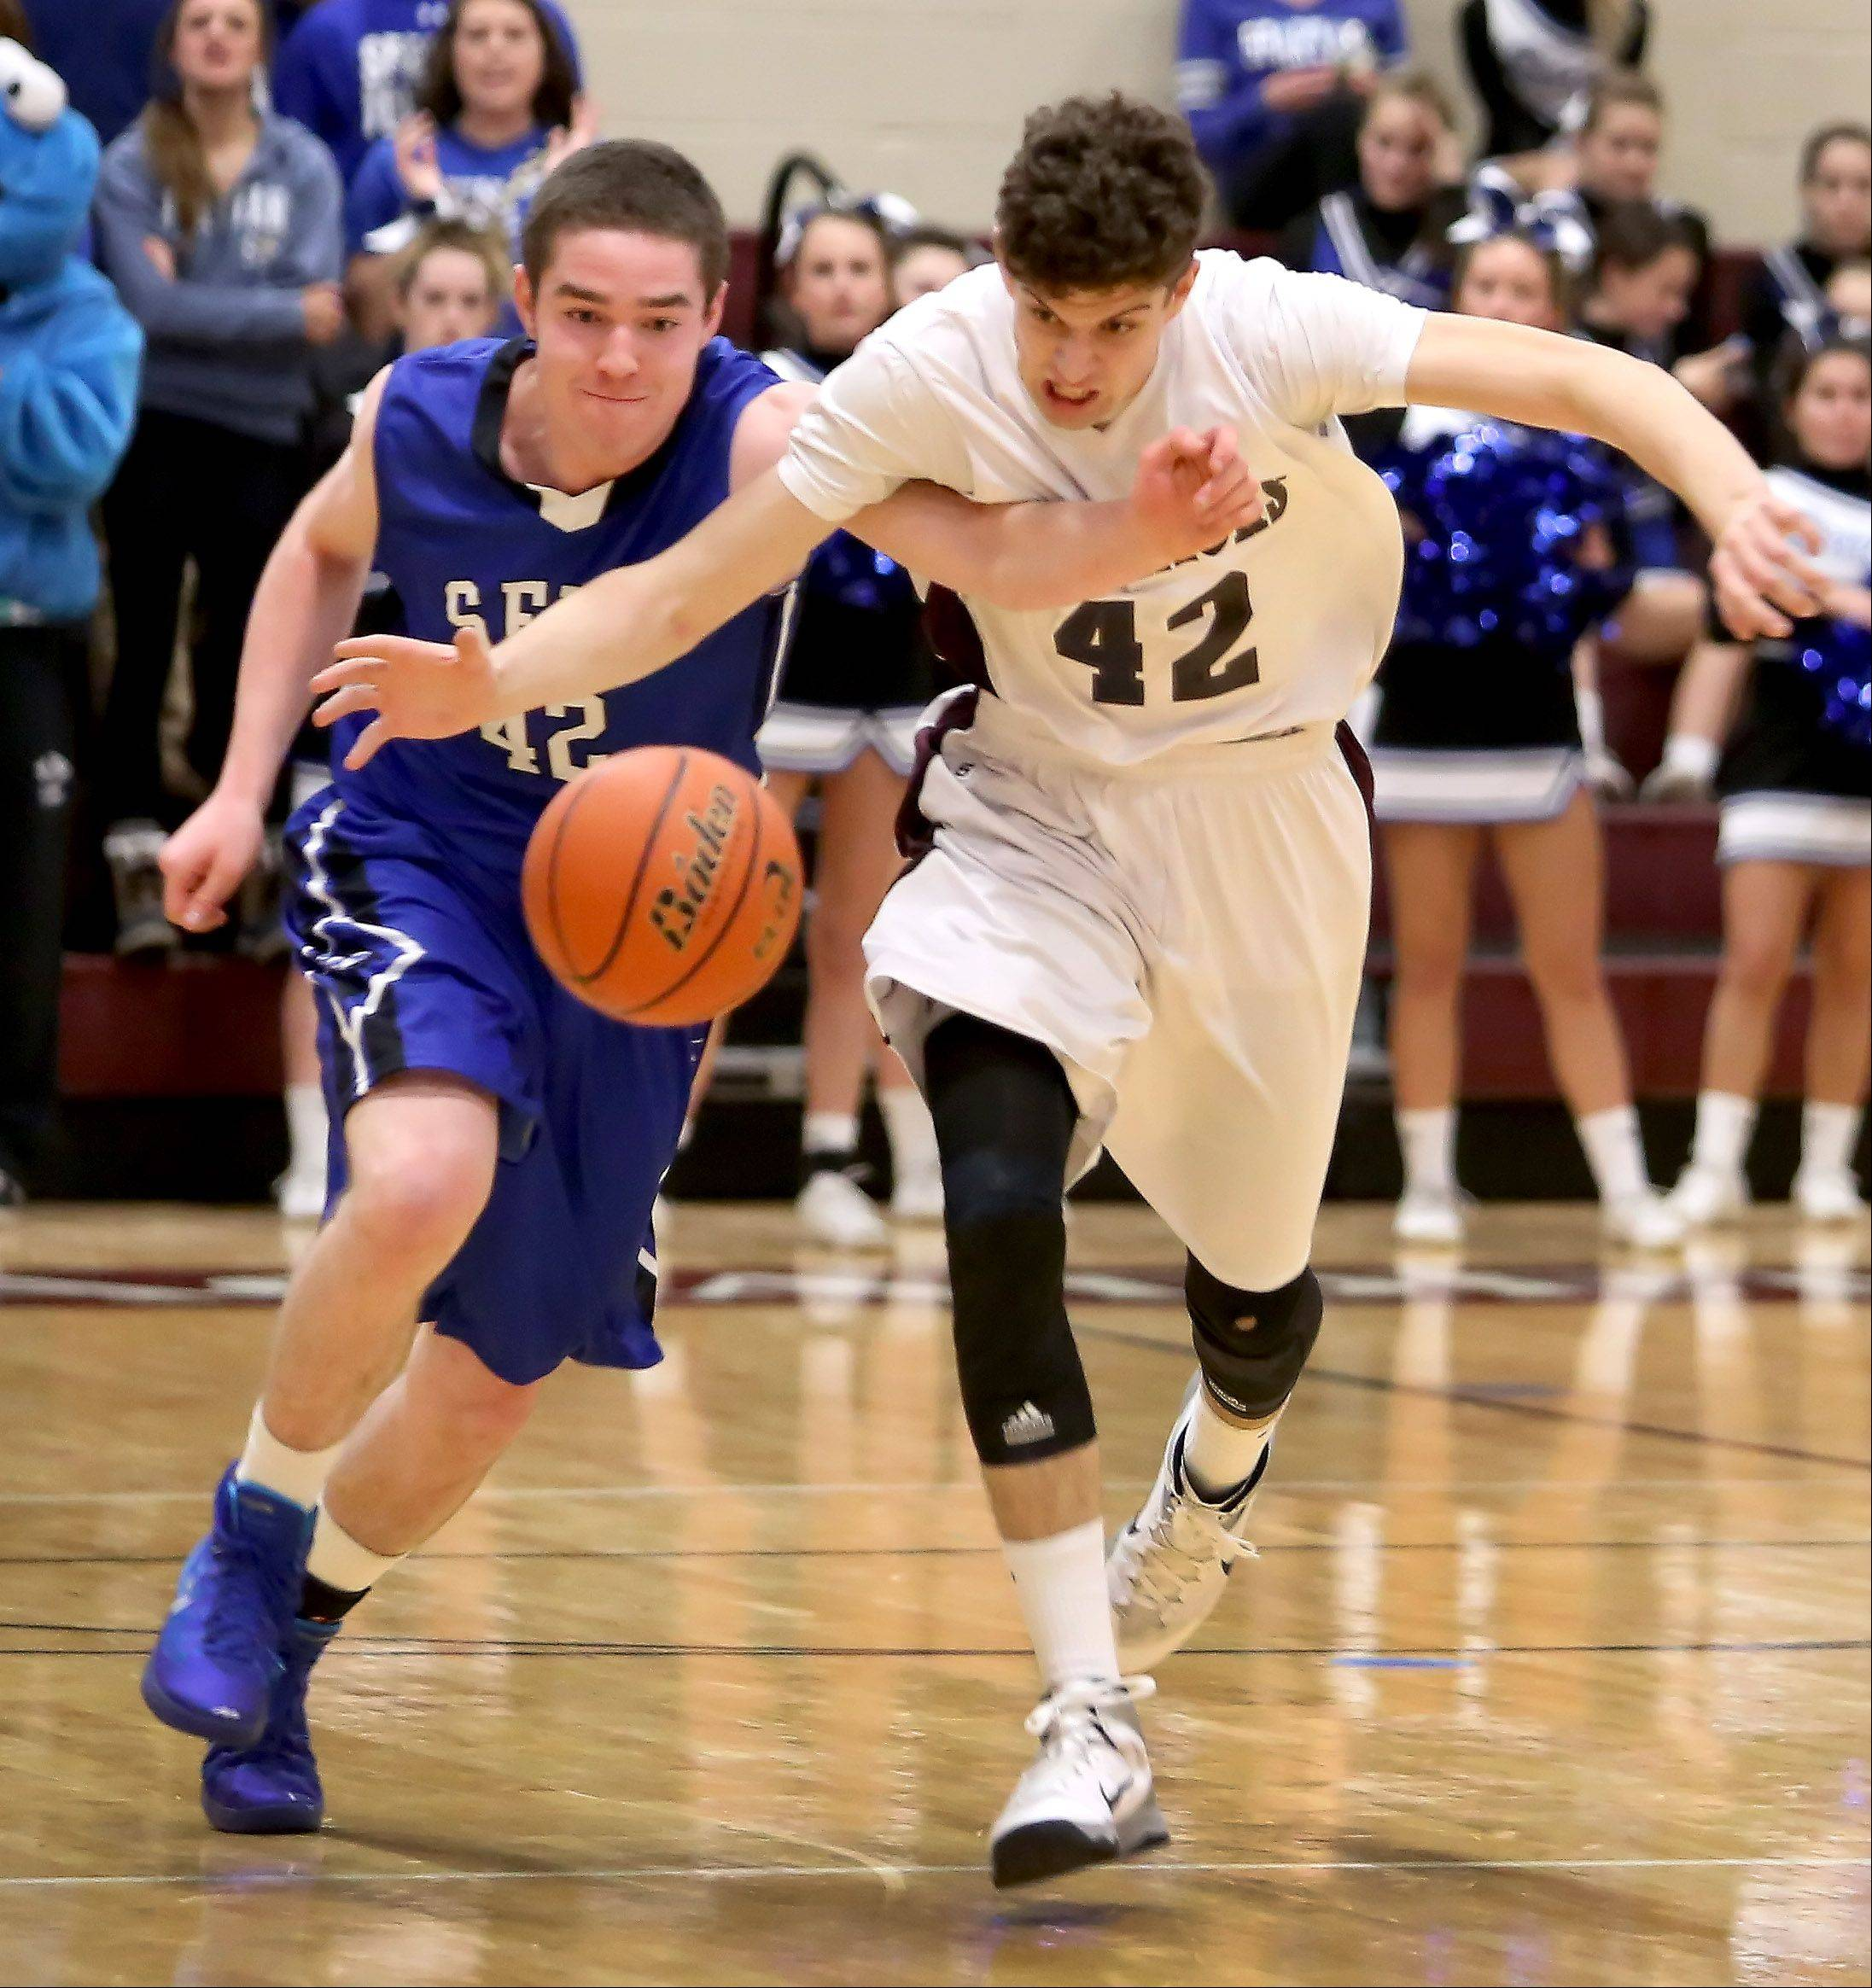 Kilian Brown, left, of St. Francis and Chandler Fuzak, right, of Wheaton Academy, chase down a loose ball during boys basketball action in West Chicago on Tuesday.